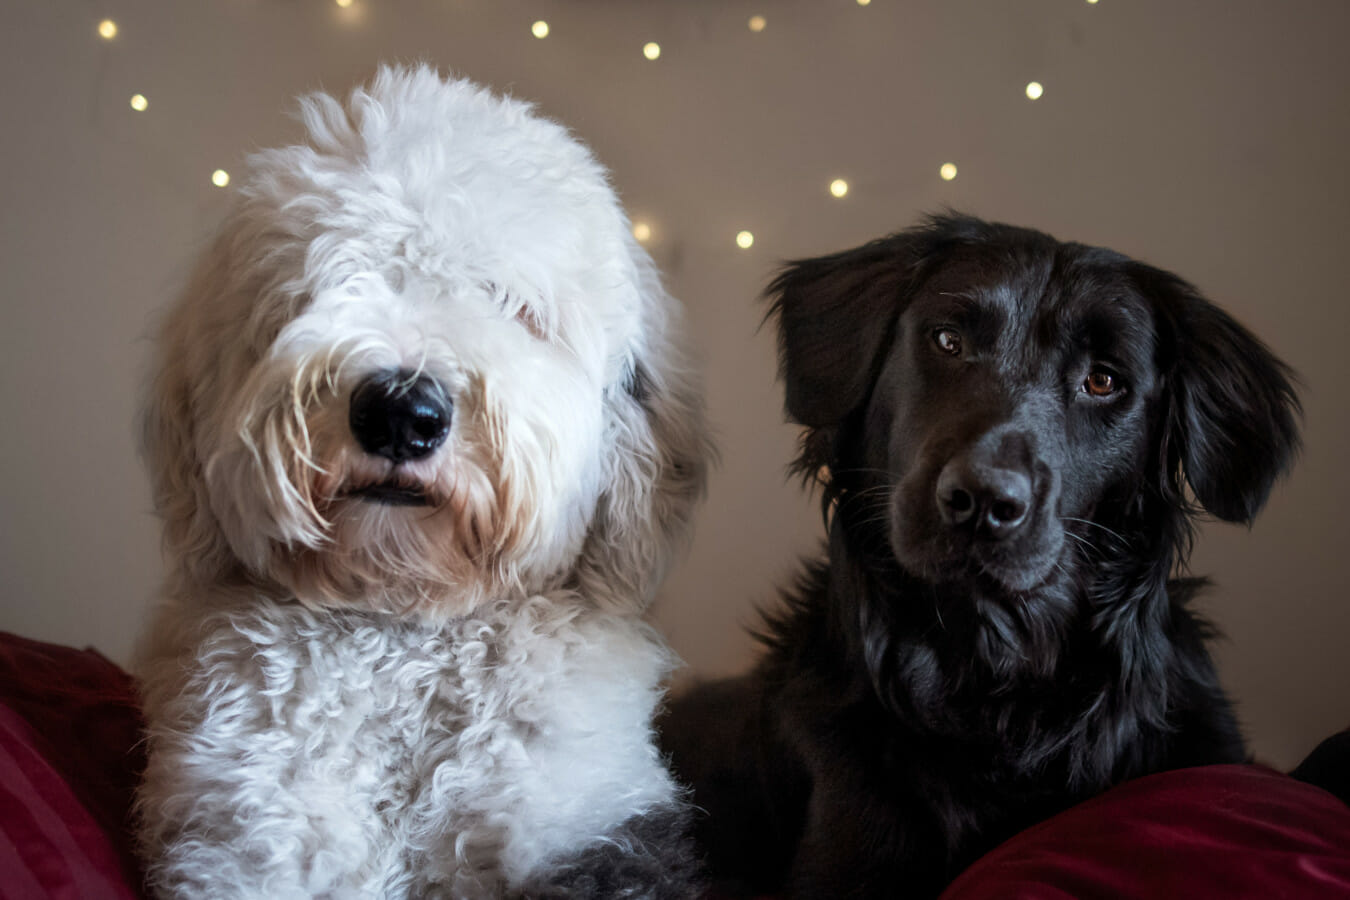 Two dogs, a sheepdog mix and a border collie mix, lay together indoors